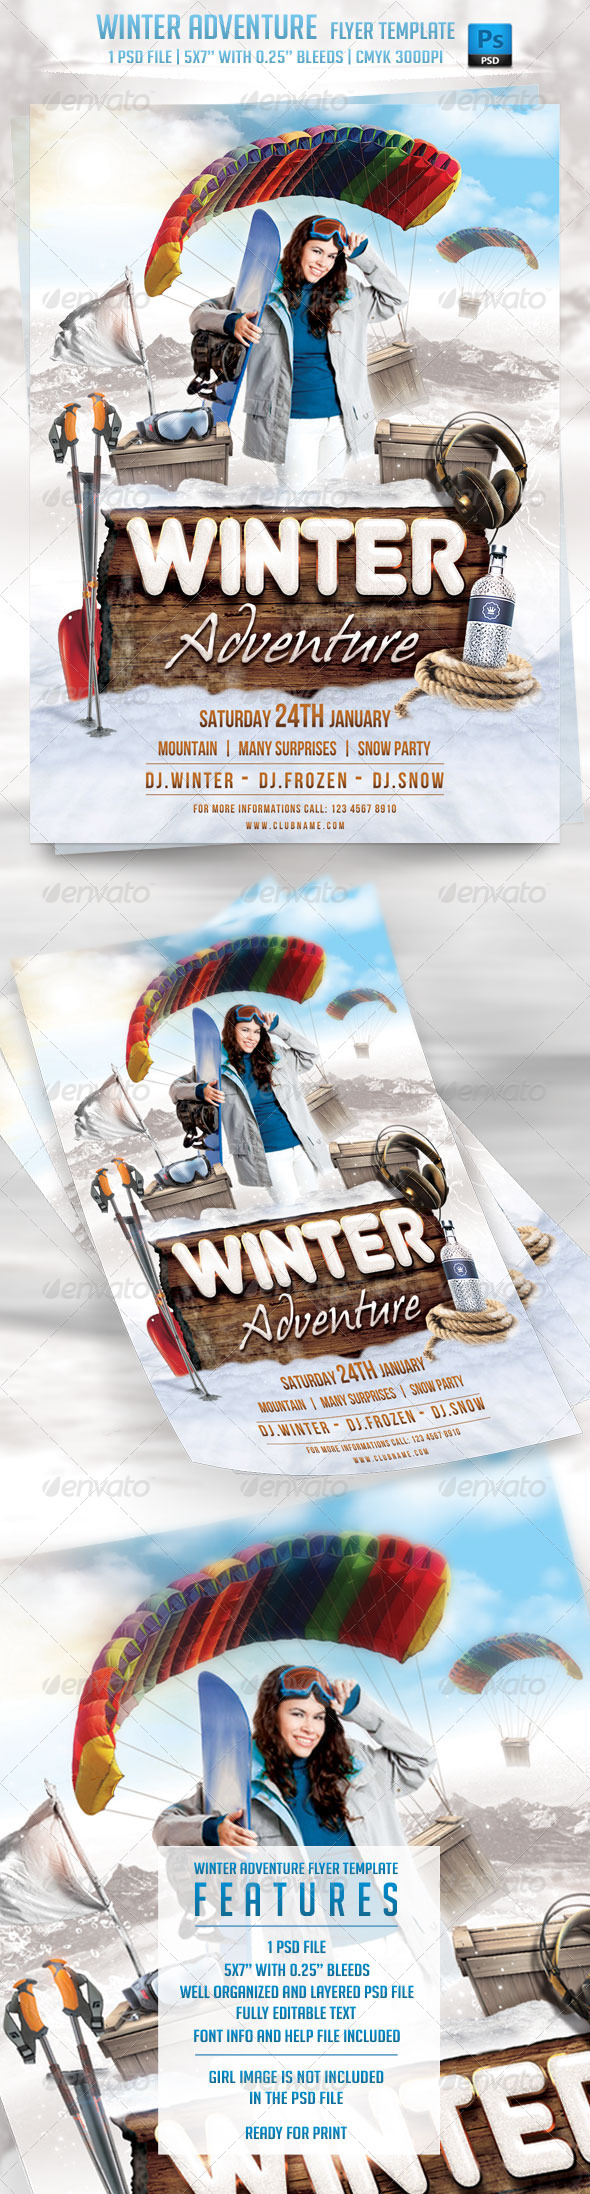 Winter Adventure Flyer Template - Events Flyers